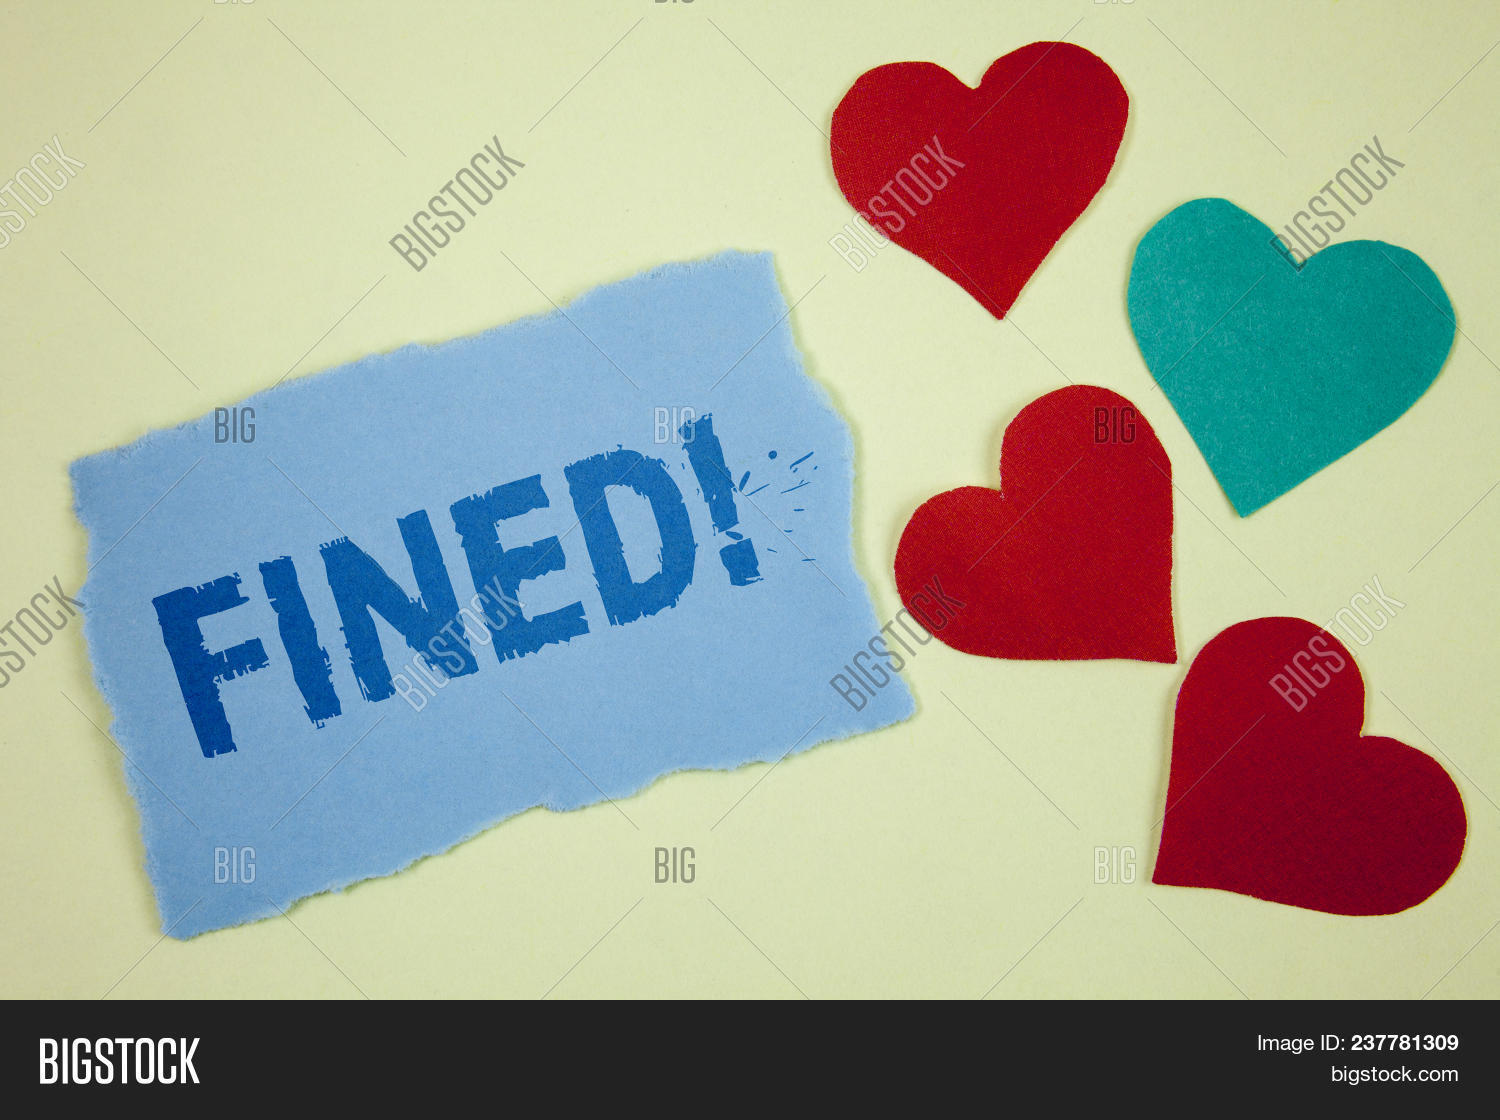 Handwriting Text Fined Image & Photo (Free Trial)   Bigstock